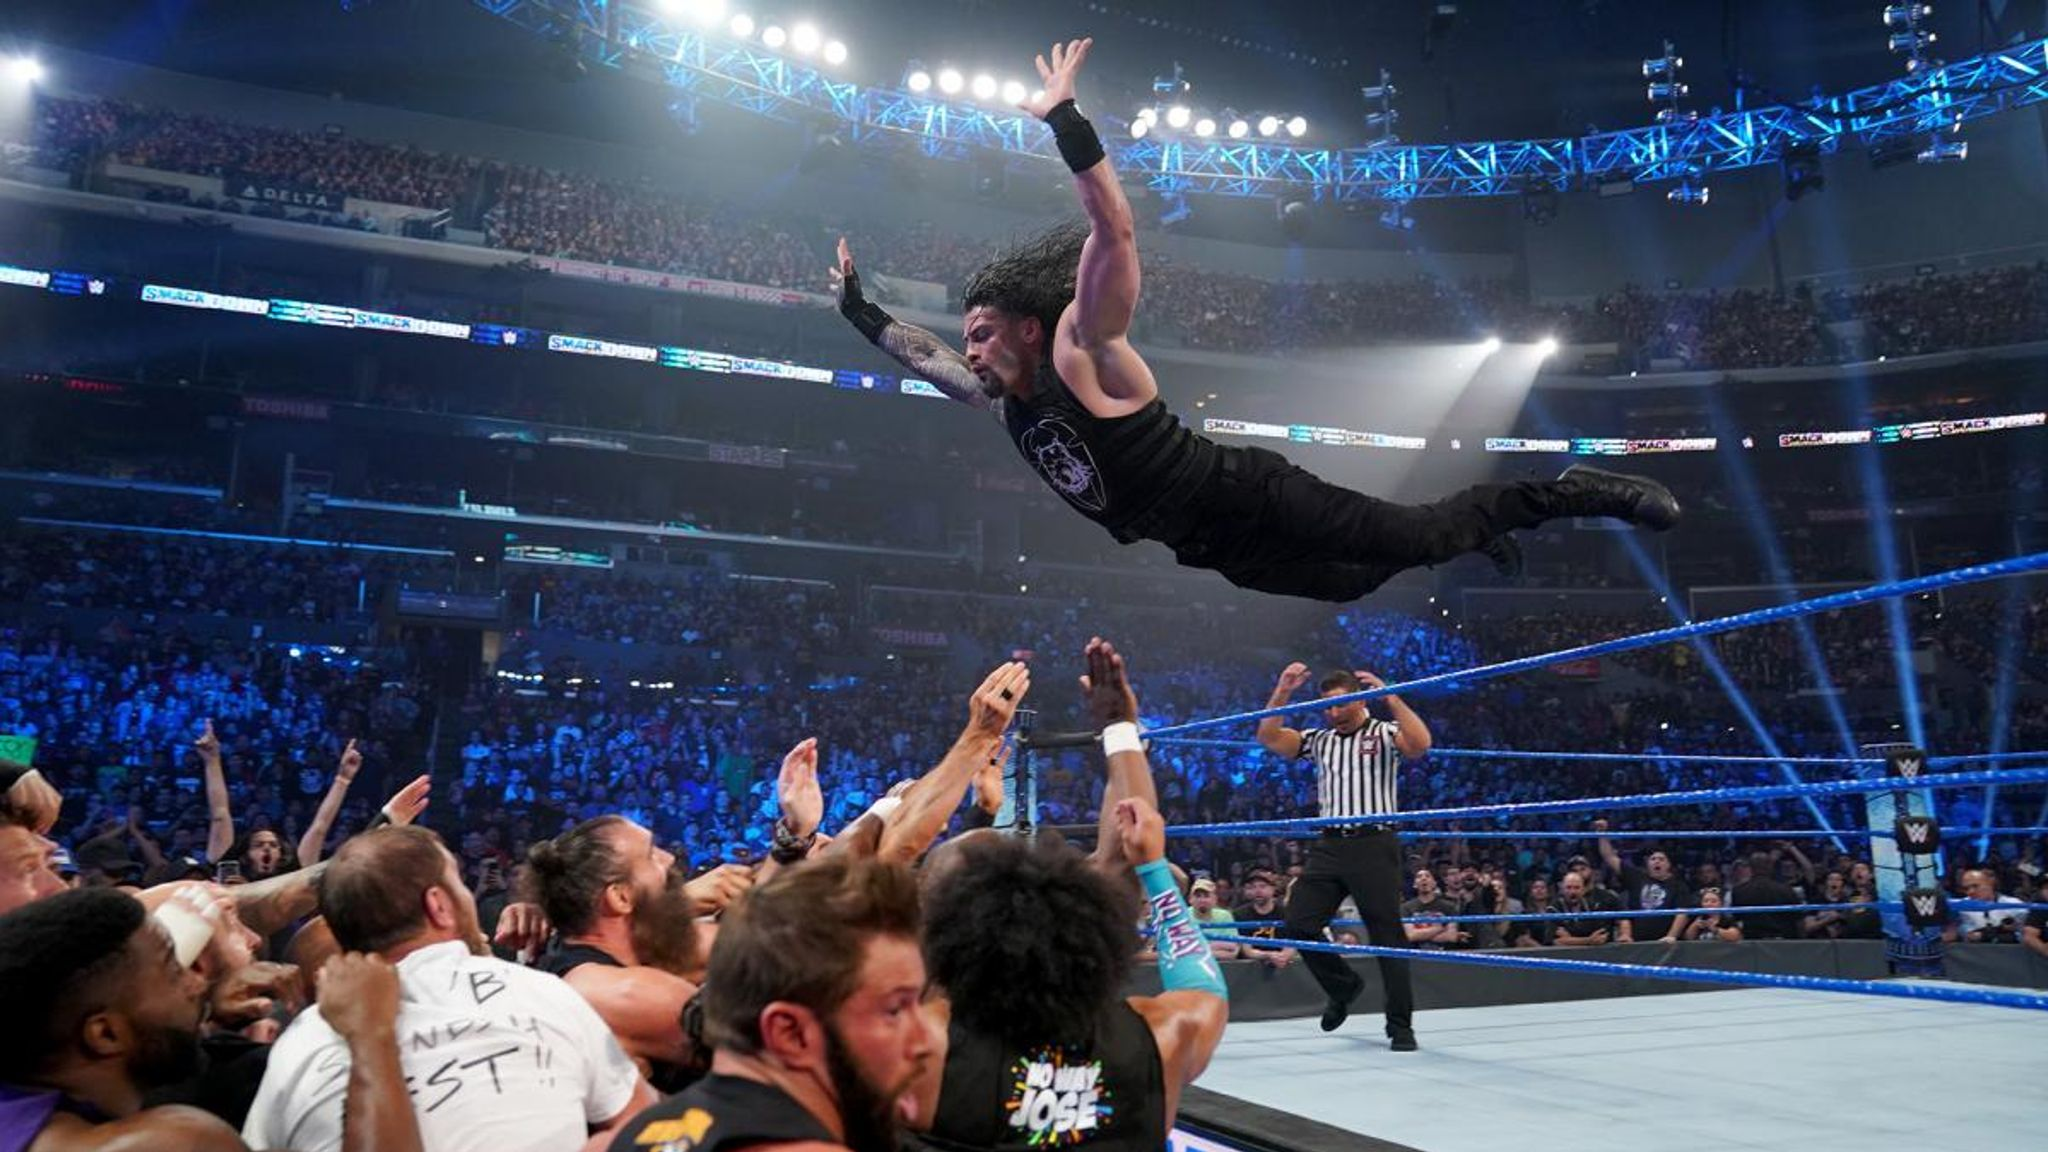 WWE SmackDown: This week's highlights from Friday night's show